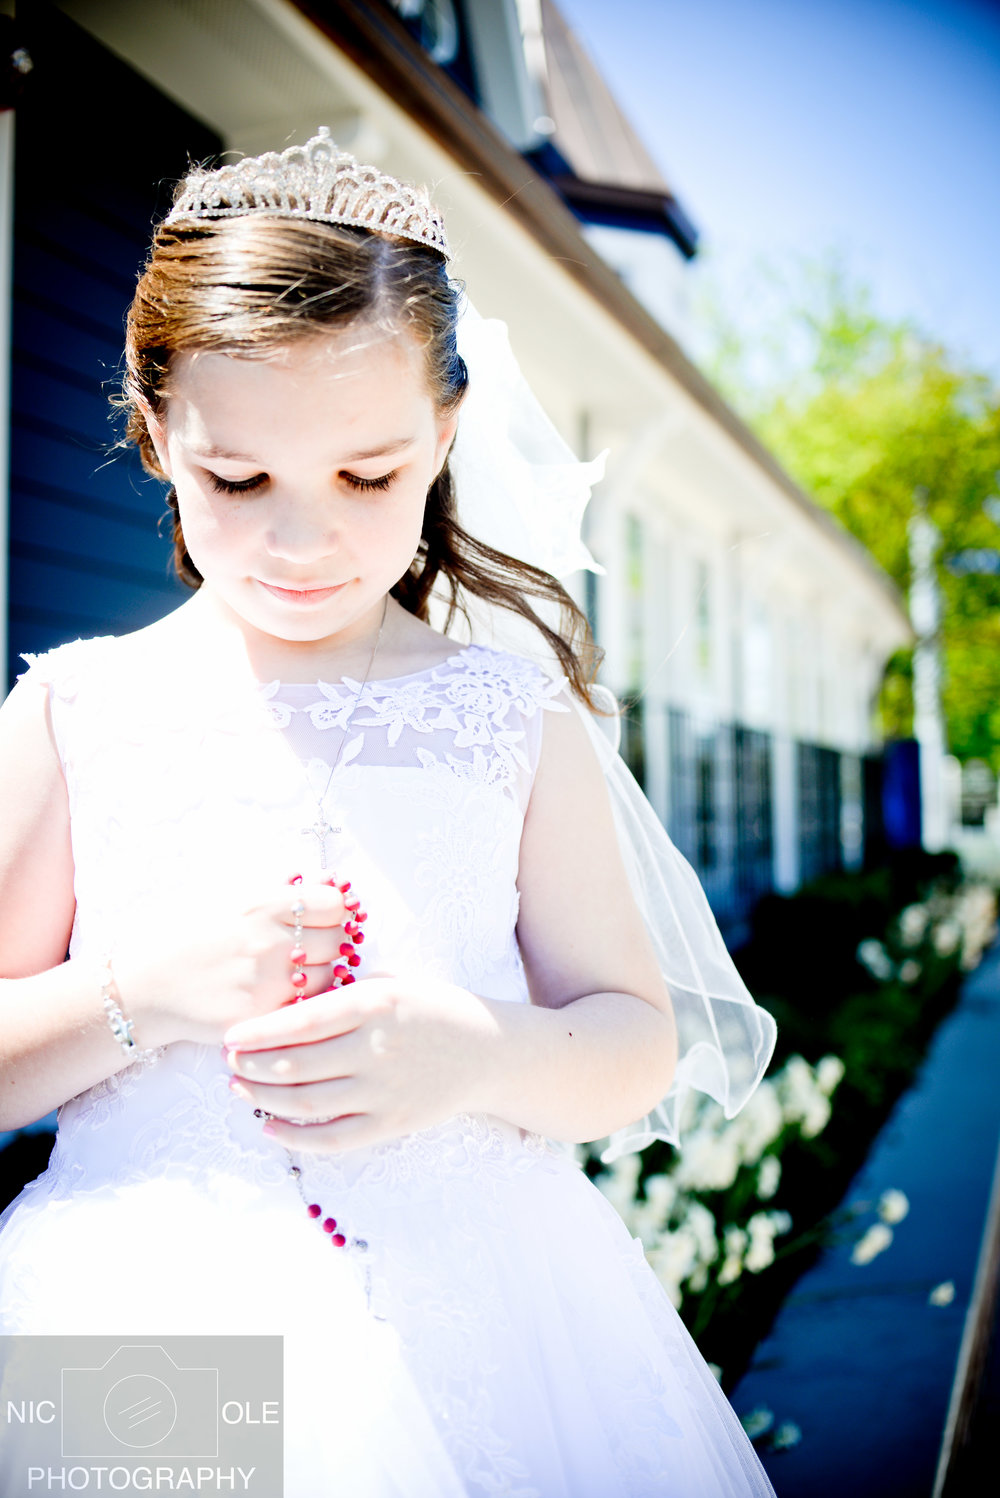 Ava's Communion 2017-NIC-OLE Photography-8.jpg